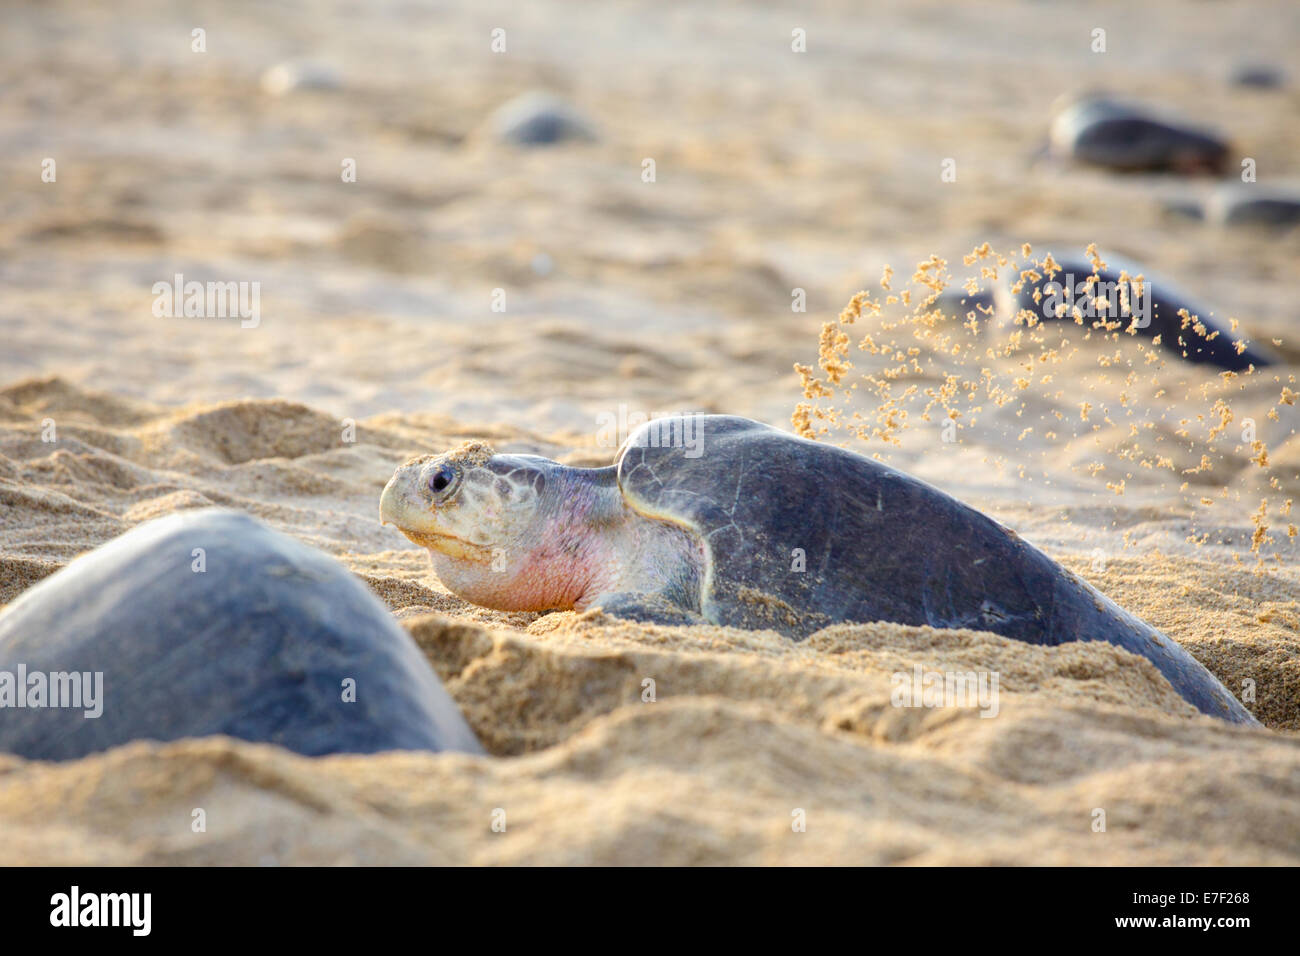 An adult Olive Ridley sea turtle digs in the sand before laying eggs in Ixtapilla, Michoacan, Mexico. - Stock Image